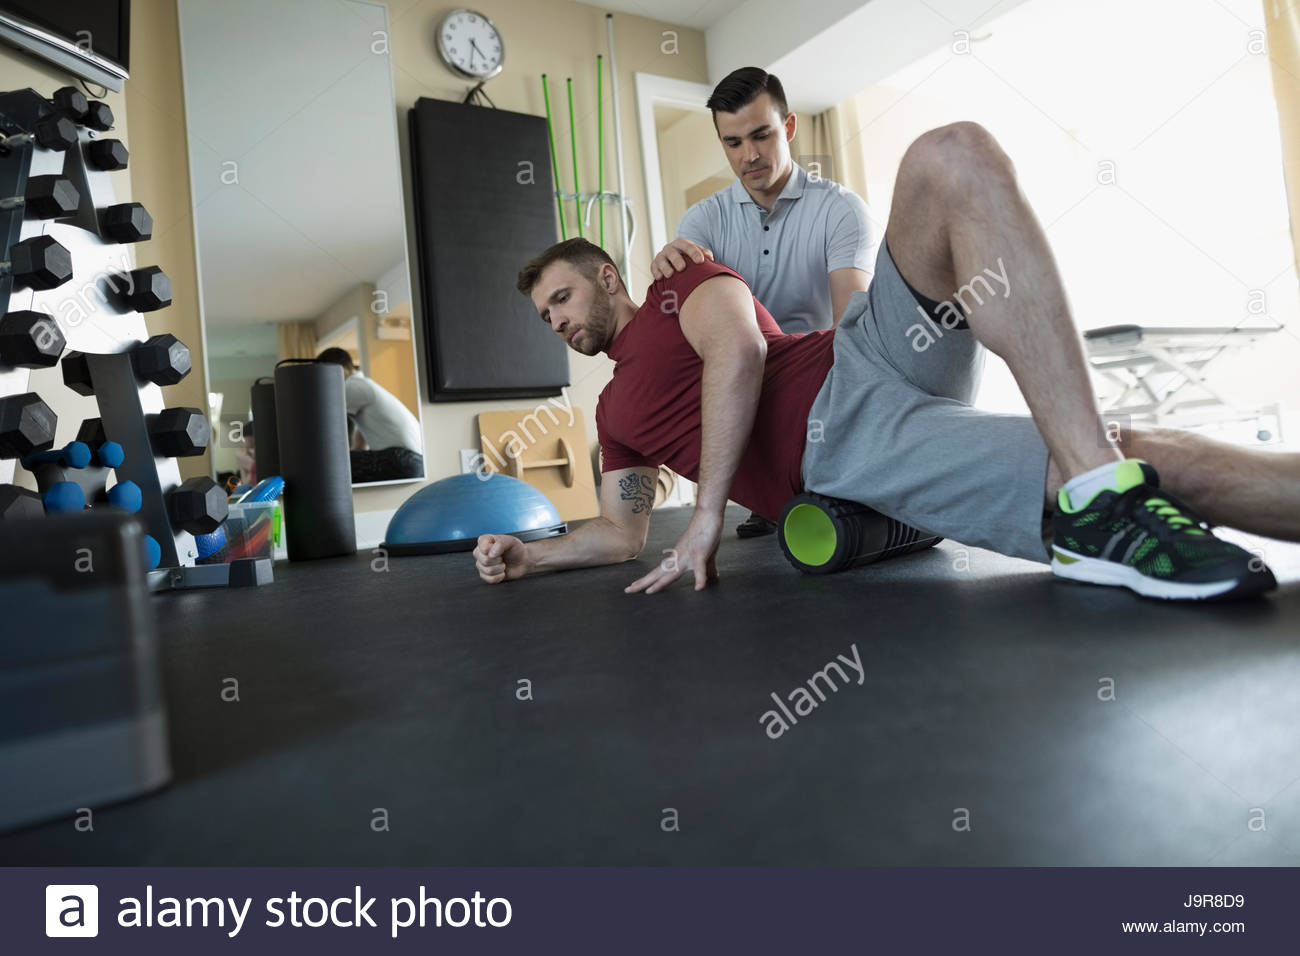 Male physiotherapist guiding client stretching in clinic gym - Stock Image